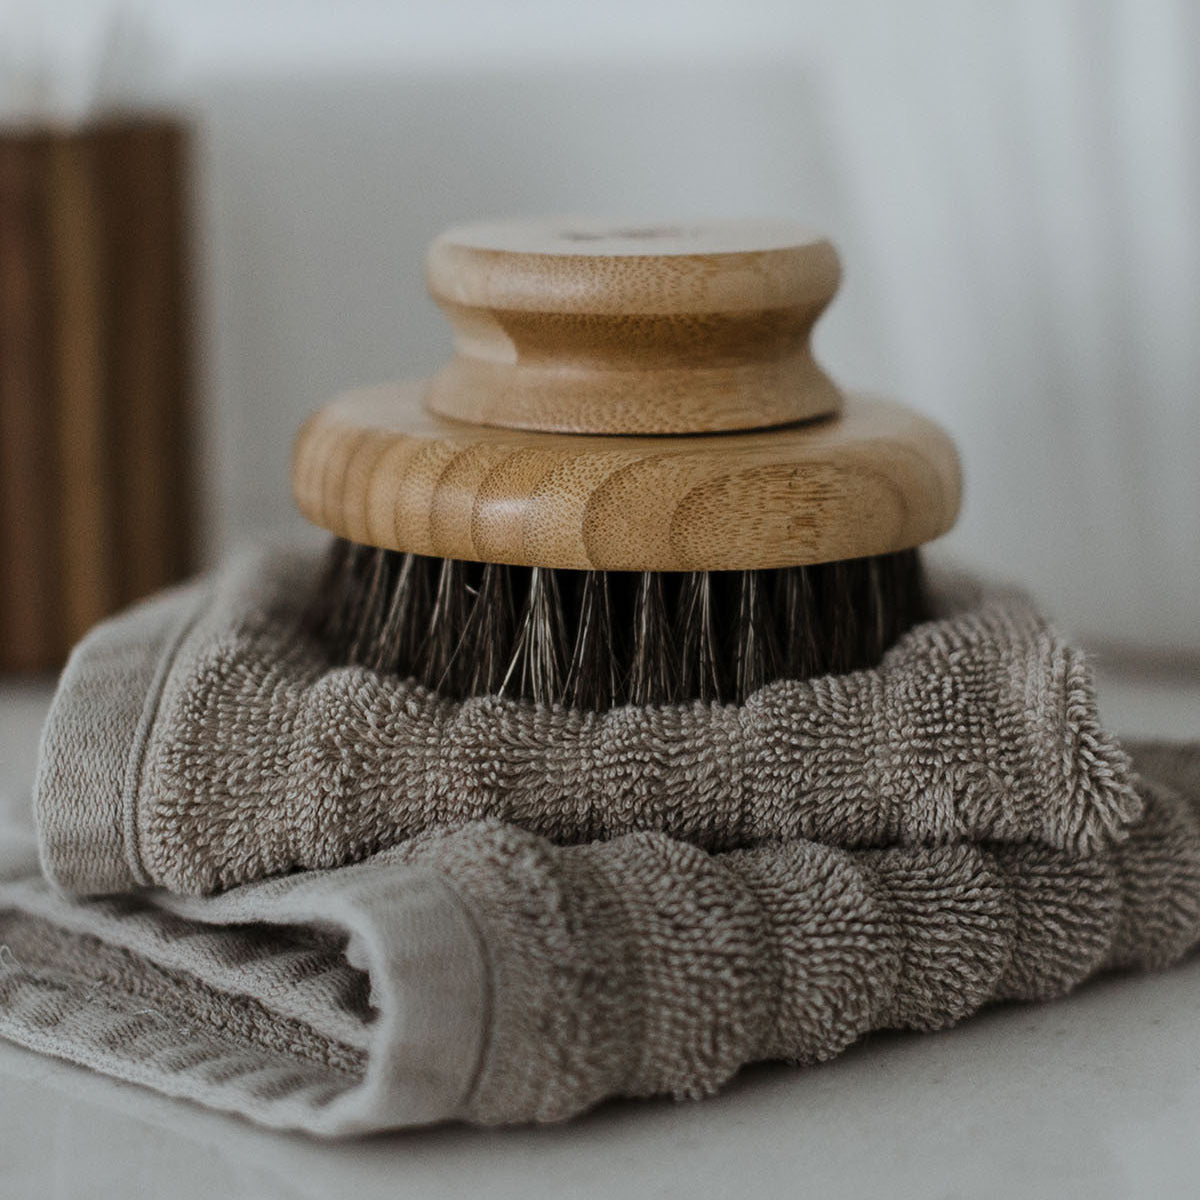 Photograph of the Dry Brush sitting on top of a folded gray towel.